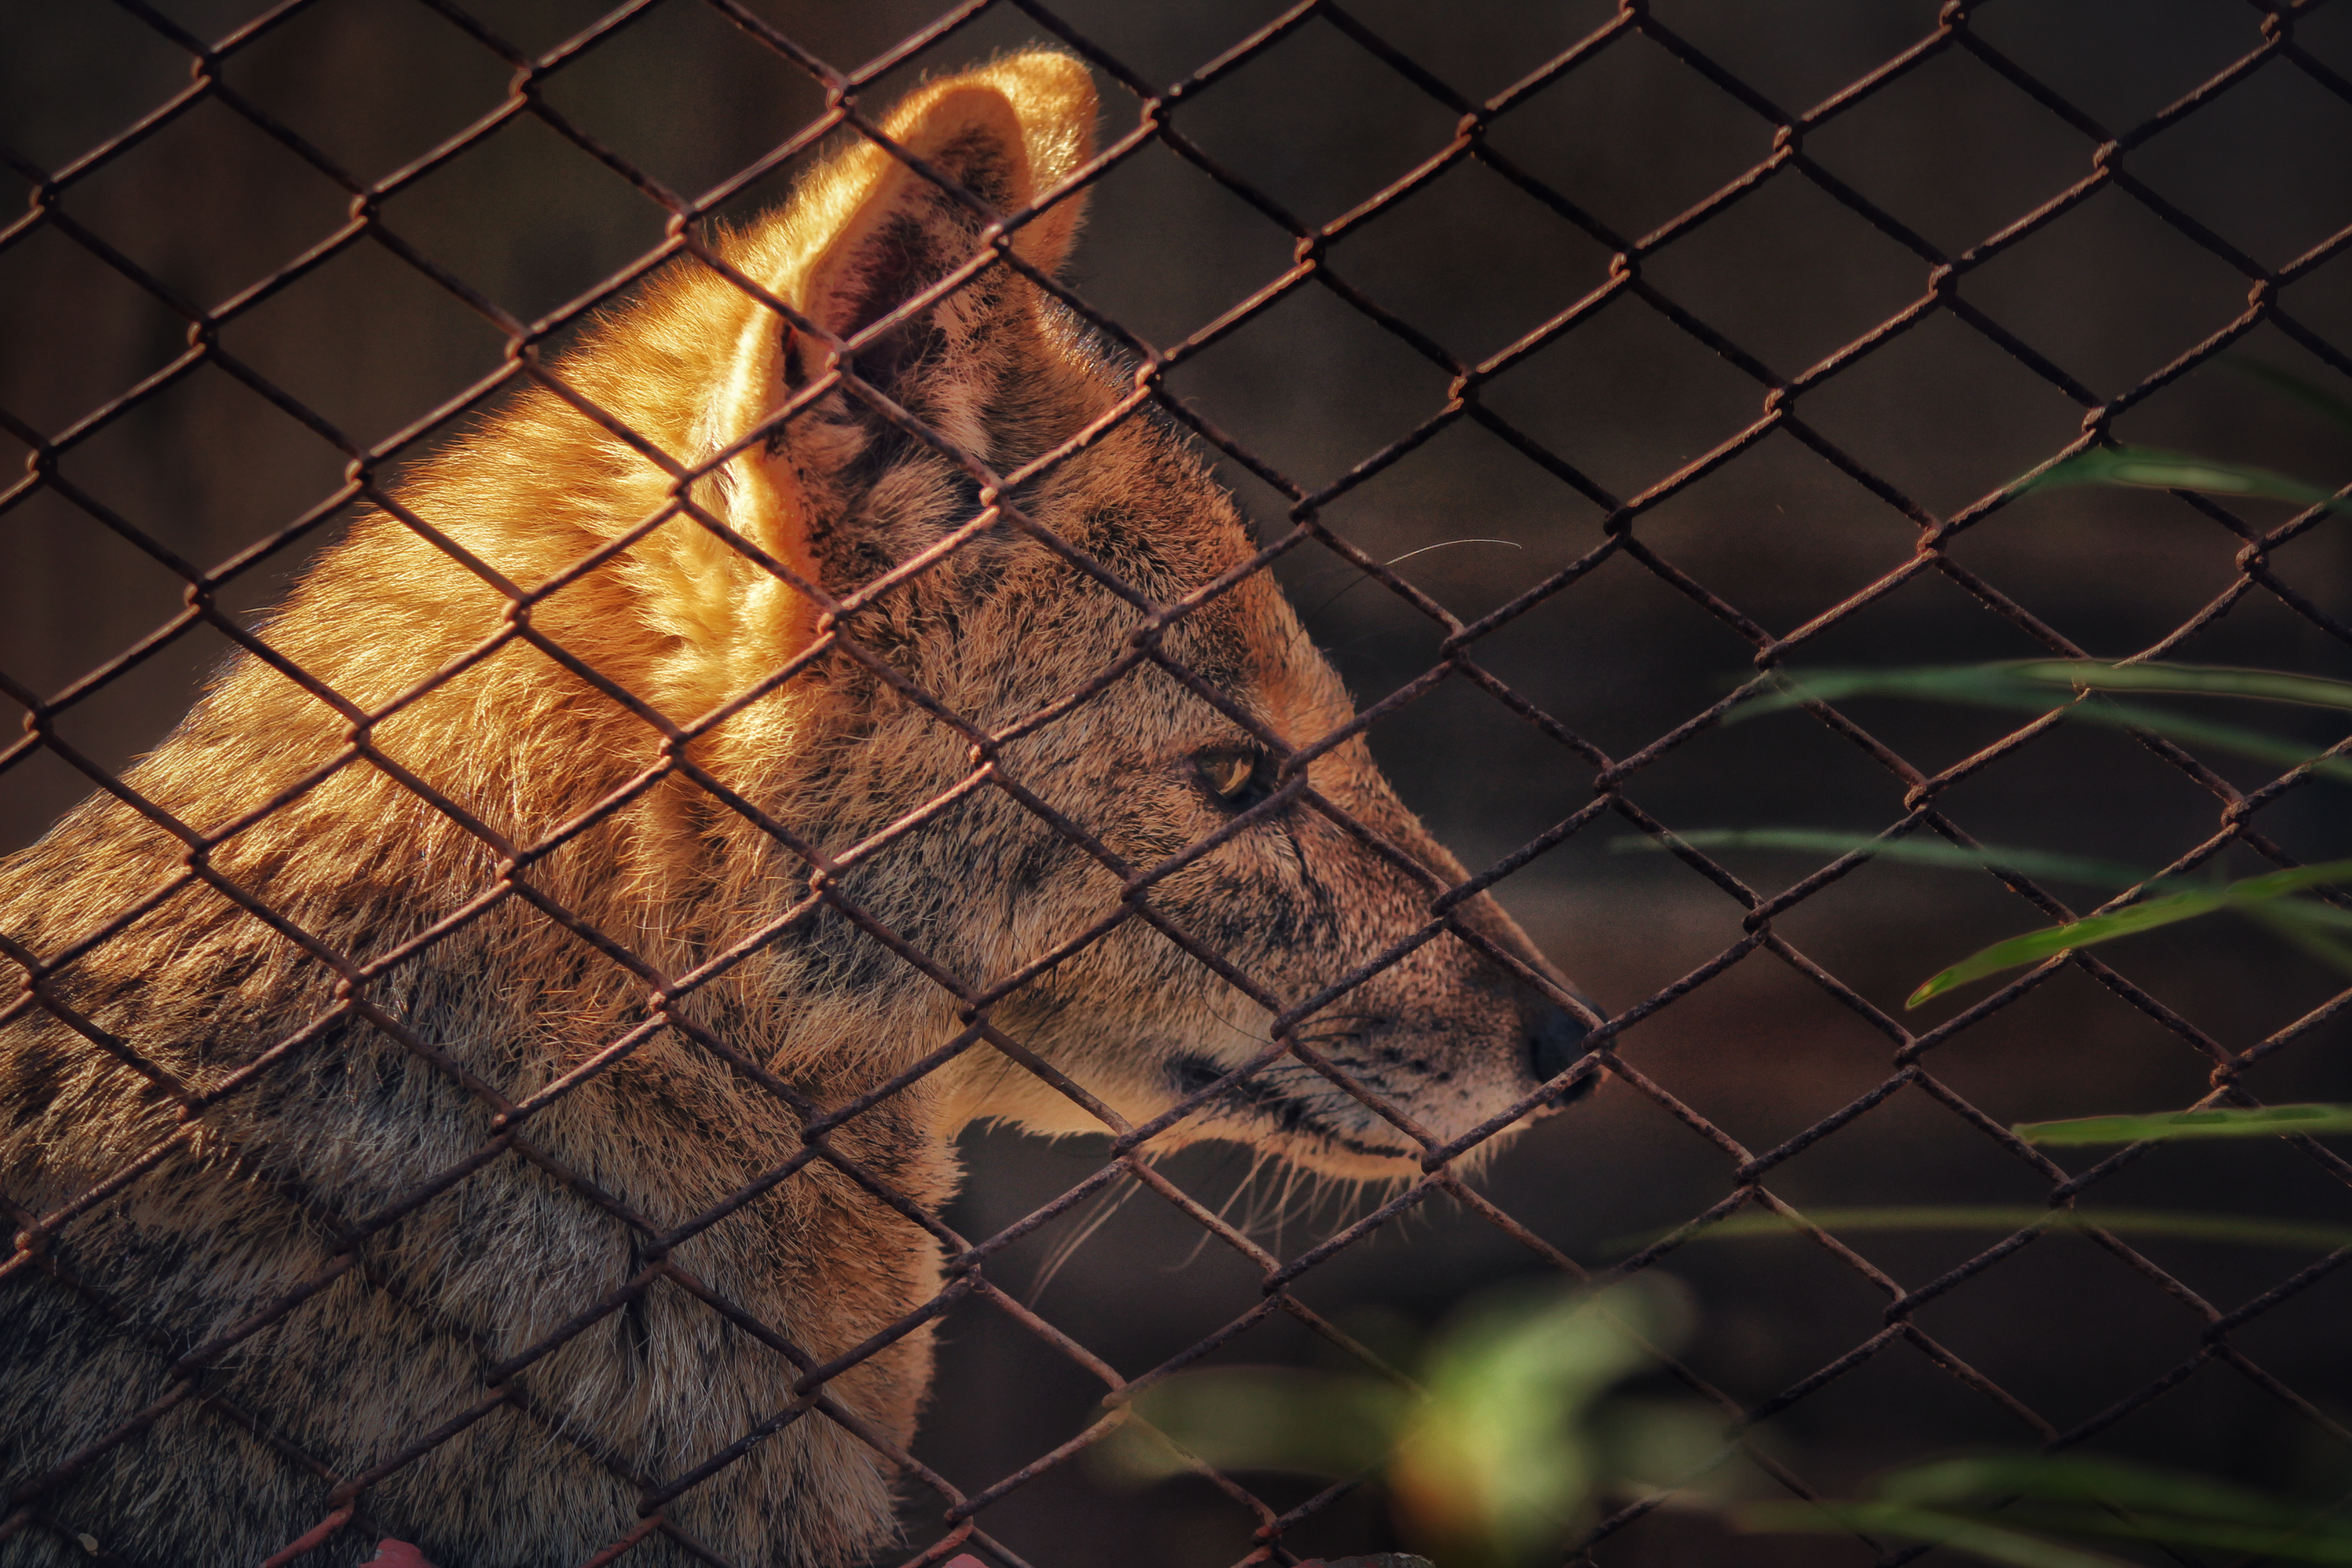 Fox behind the cage